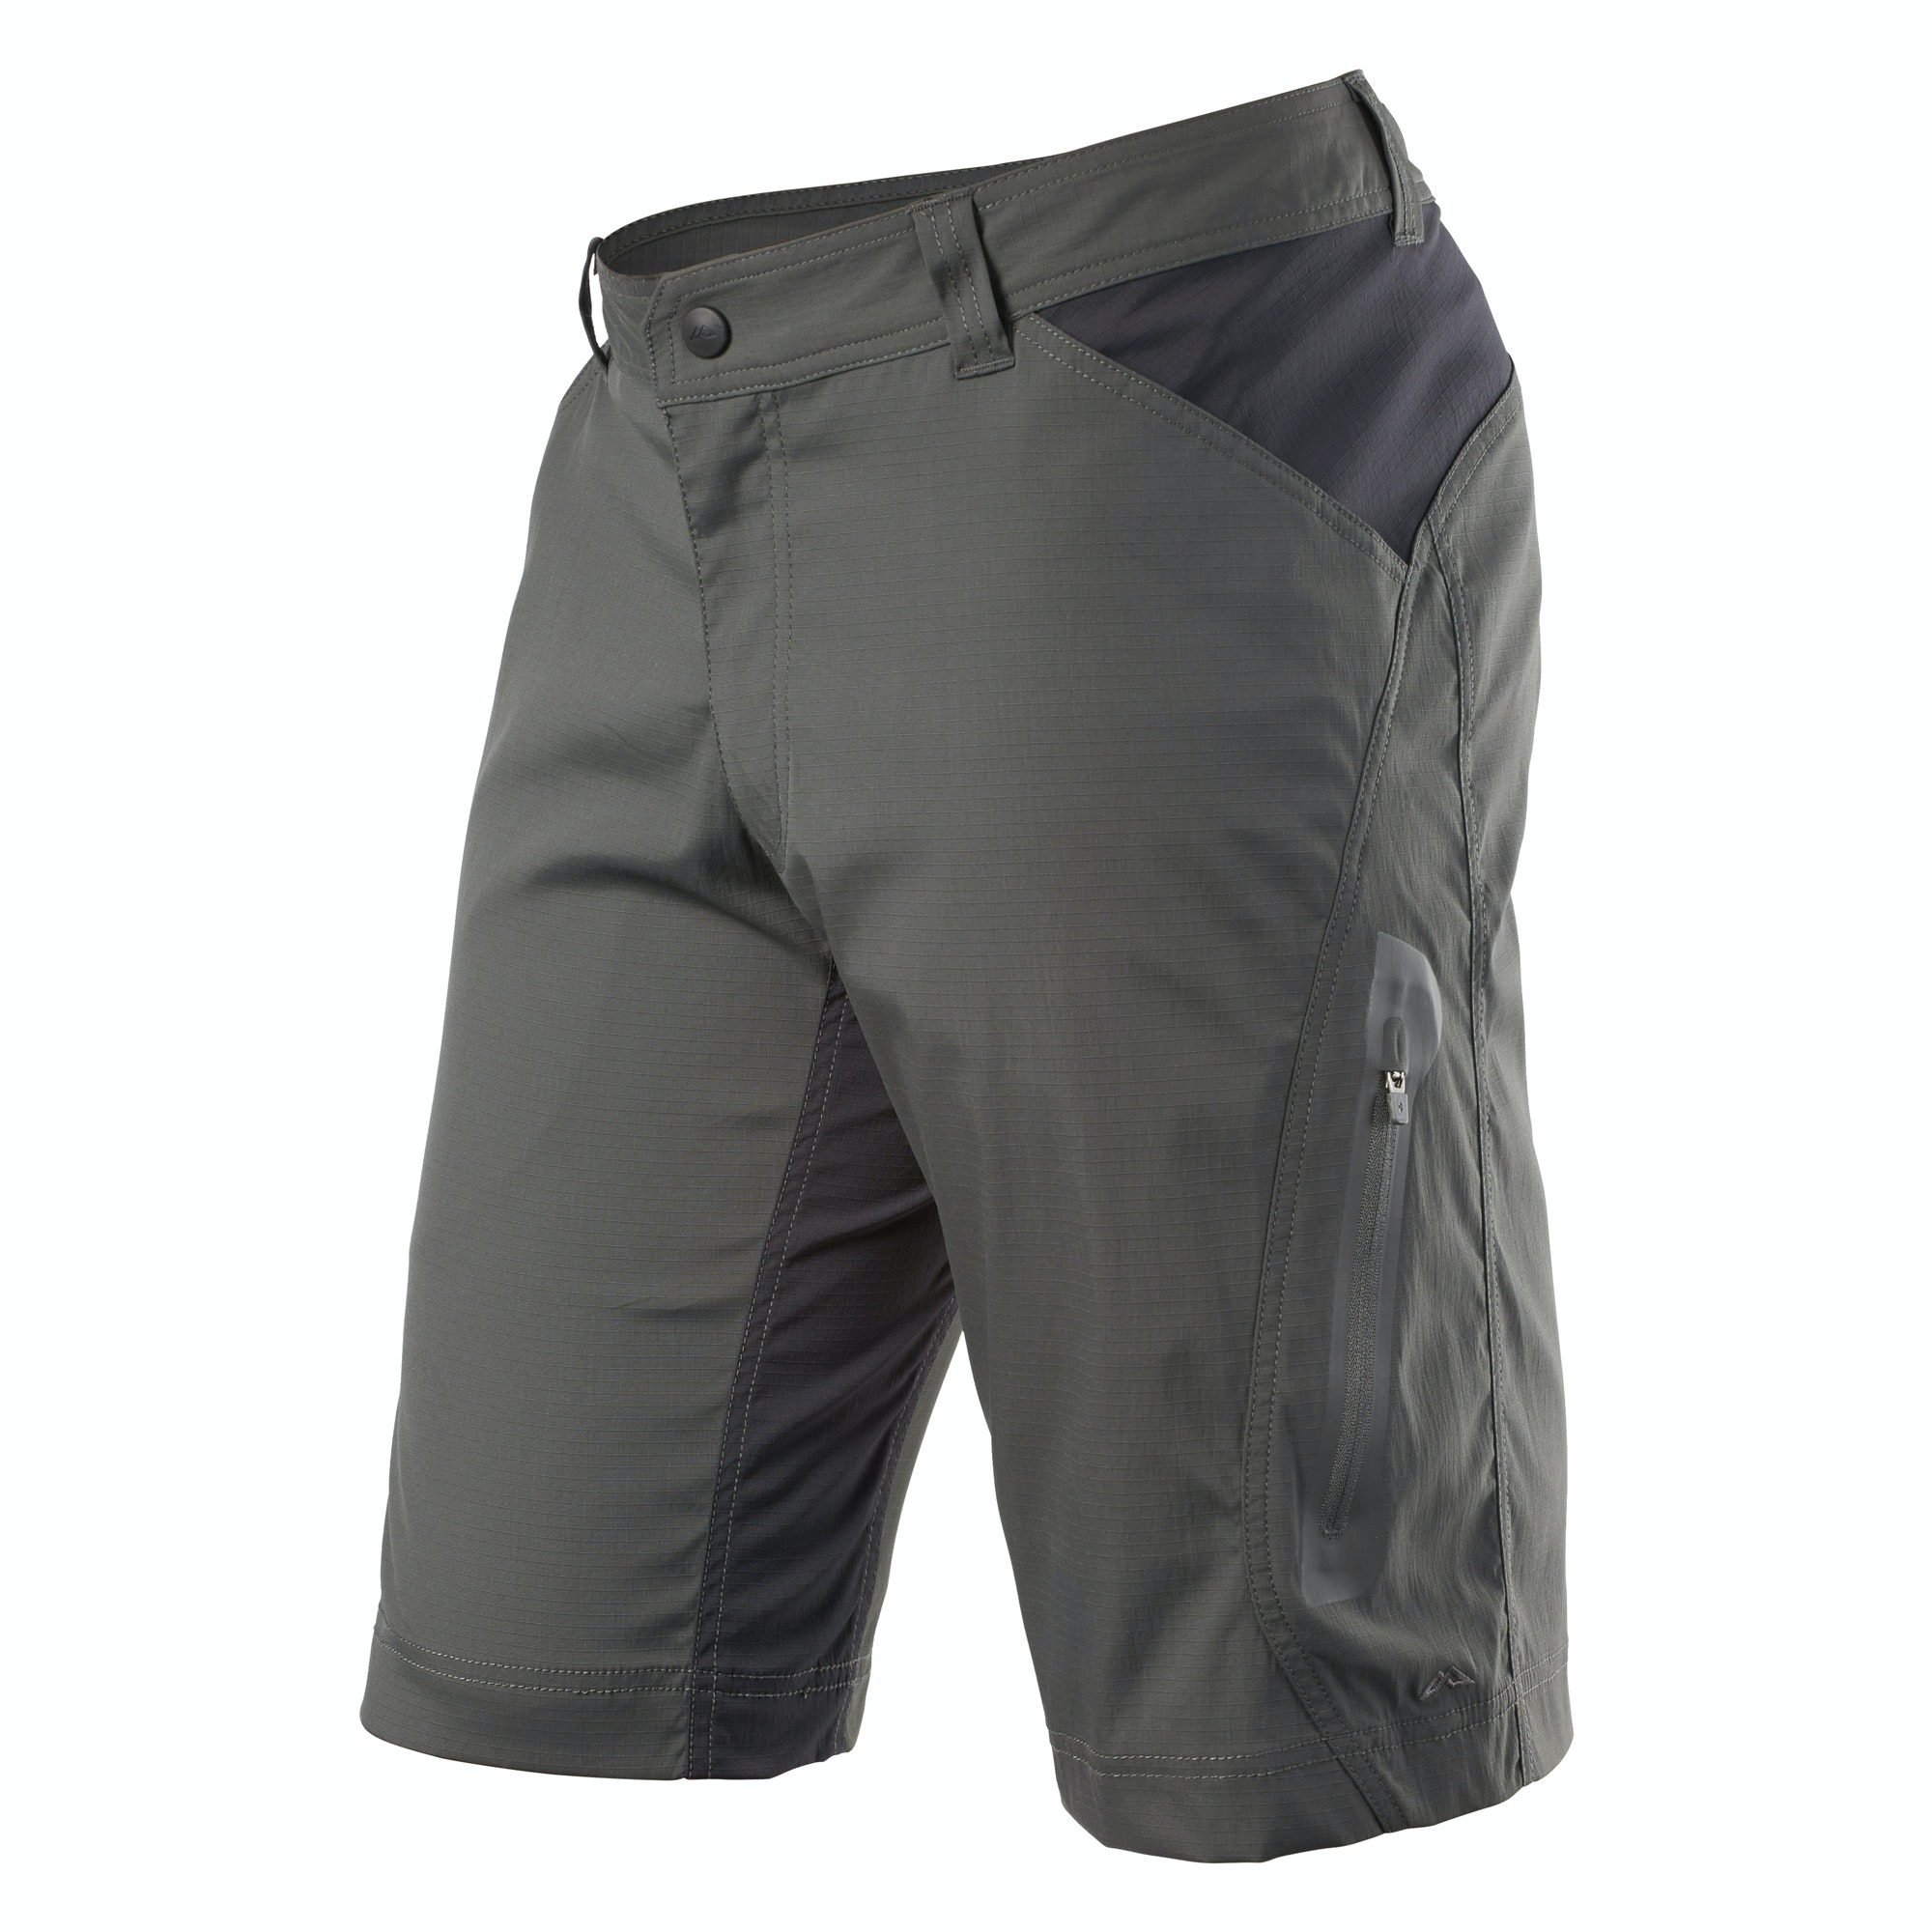 thumbnail 18 - NEW-Kathmandu-Aklo-Men-039-s-Walking-Hiking-Travel-Shorts-Pants-UPF-50-Protection